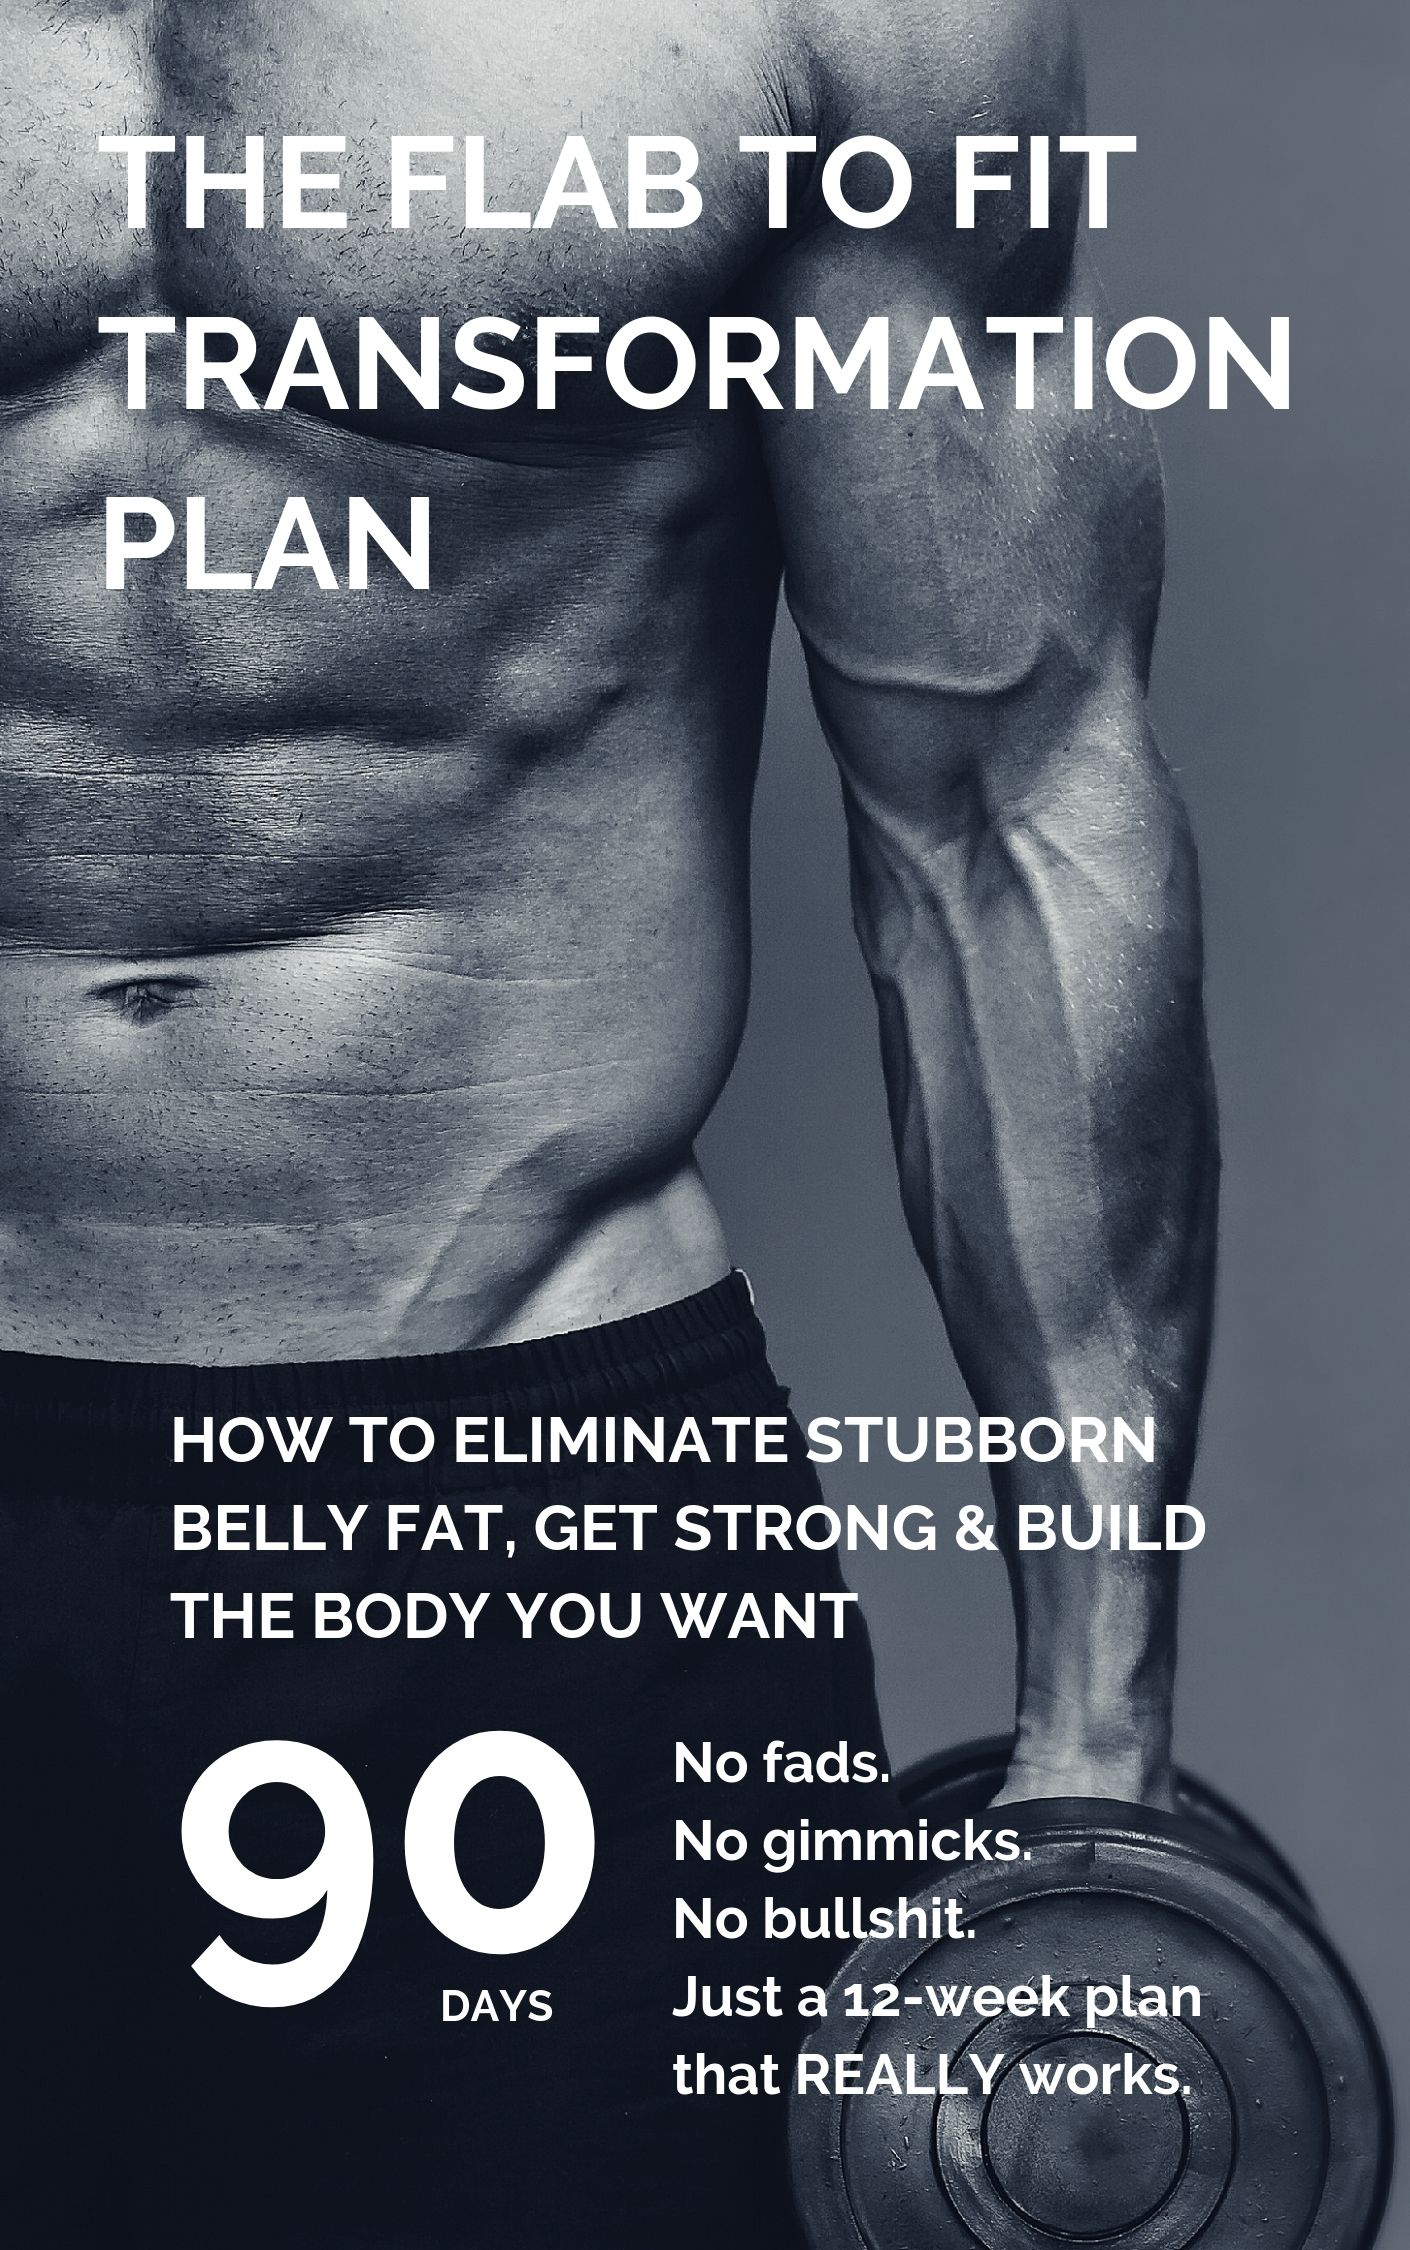 Flab to fit plan